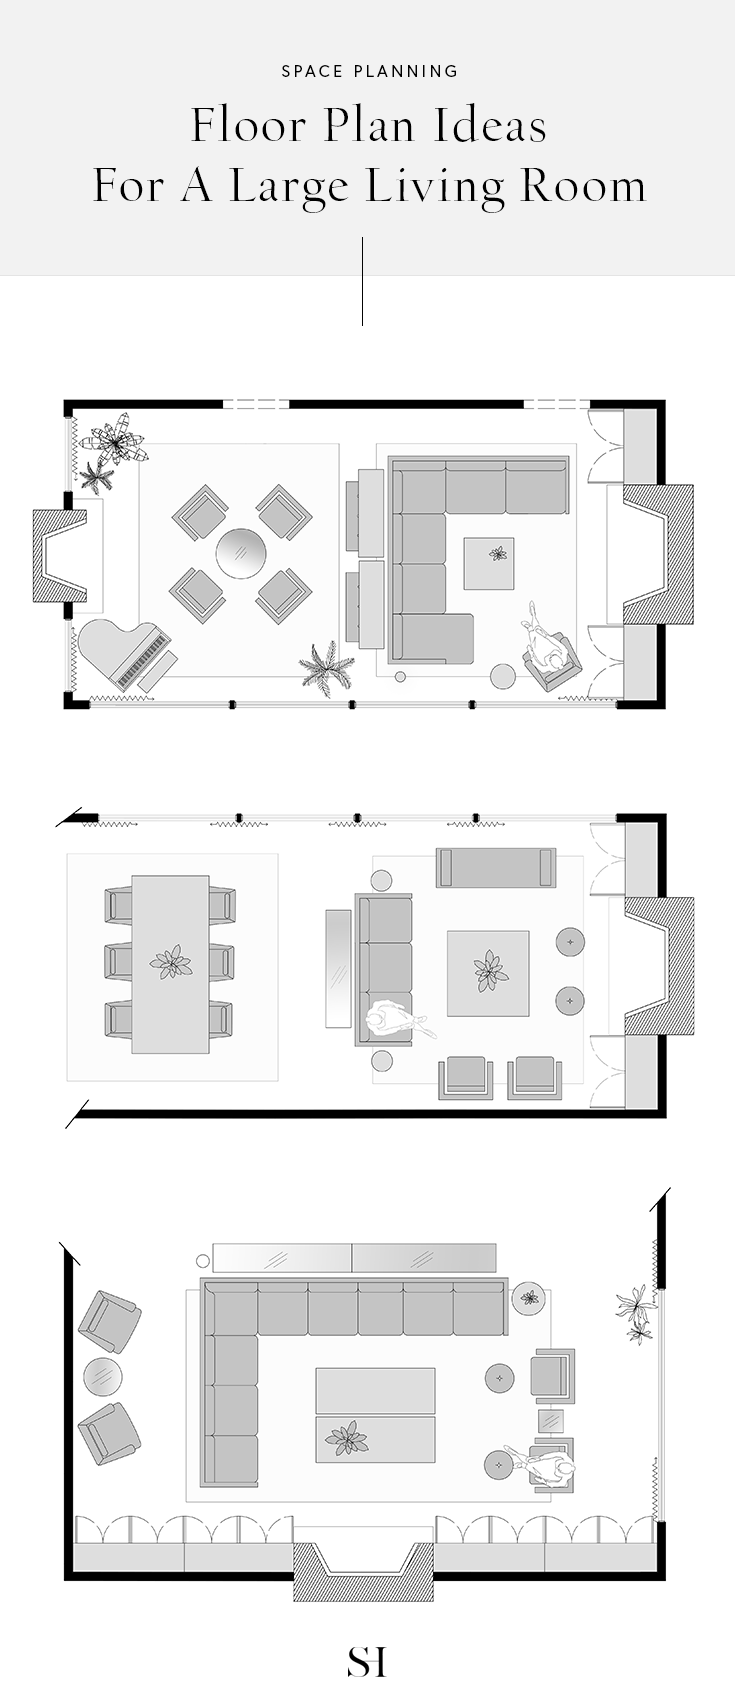 Floor Plan And Layout Ideas For Furniture In A Large Rectangle Living Room